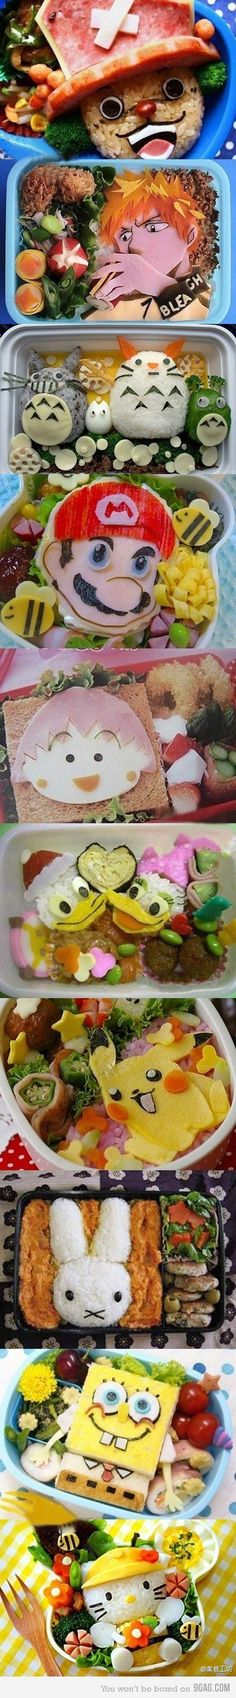 And THAT'S why bentos are so awesome ... you can't do that with regular food!